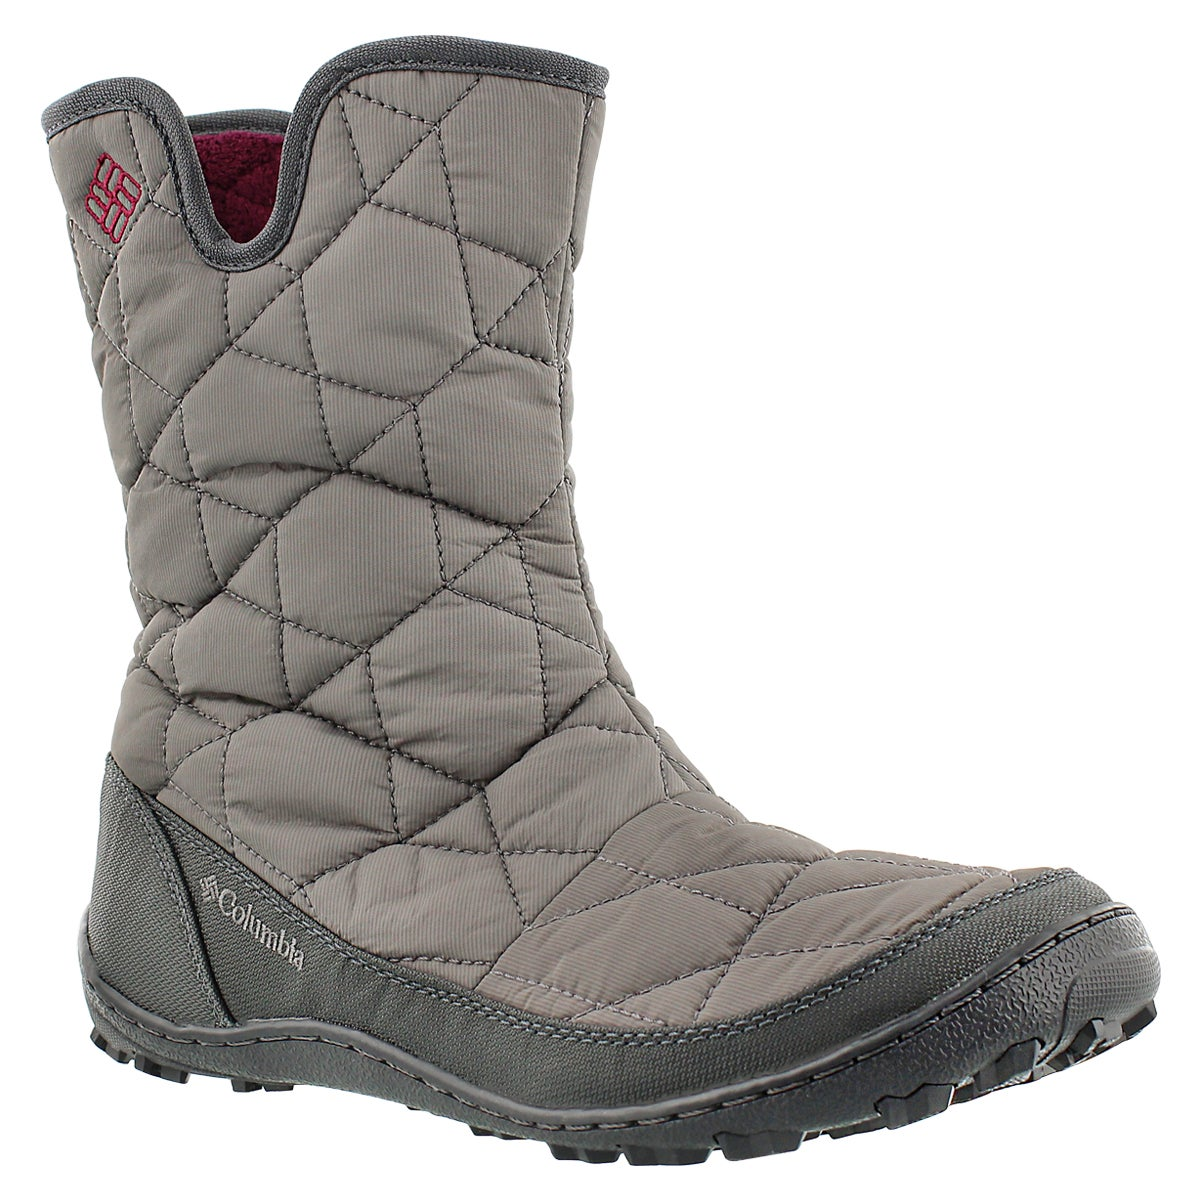 Women's MINX SLIP II grey pull on wnter boots